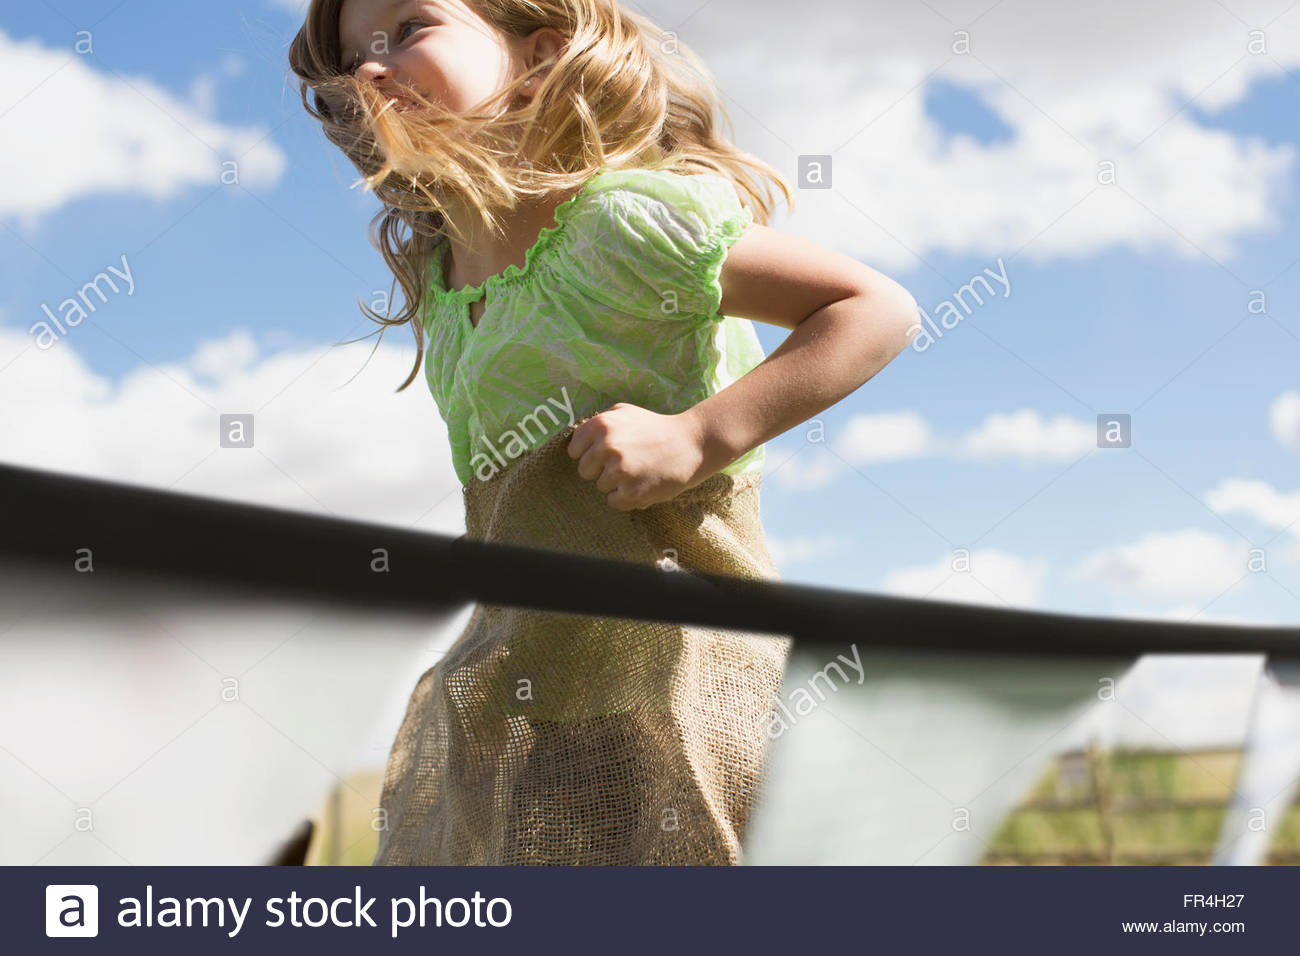 Young girl participating in a potato sack race. - Stock Image